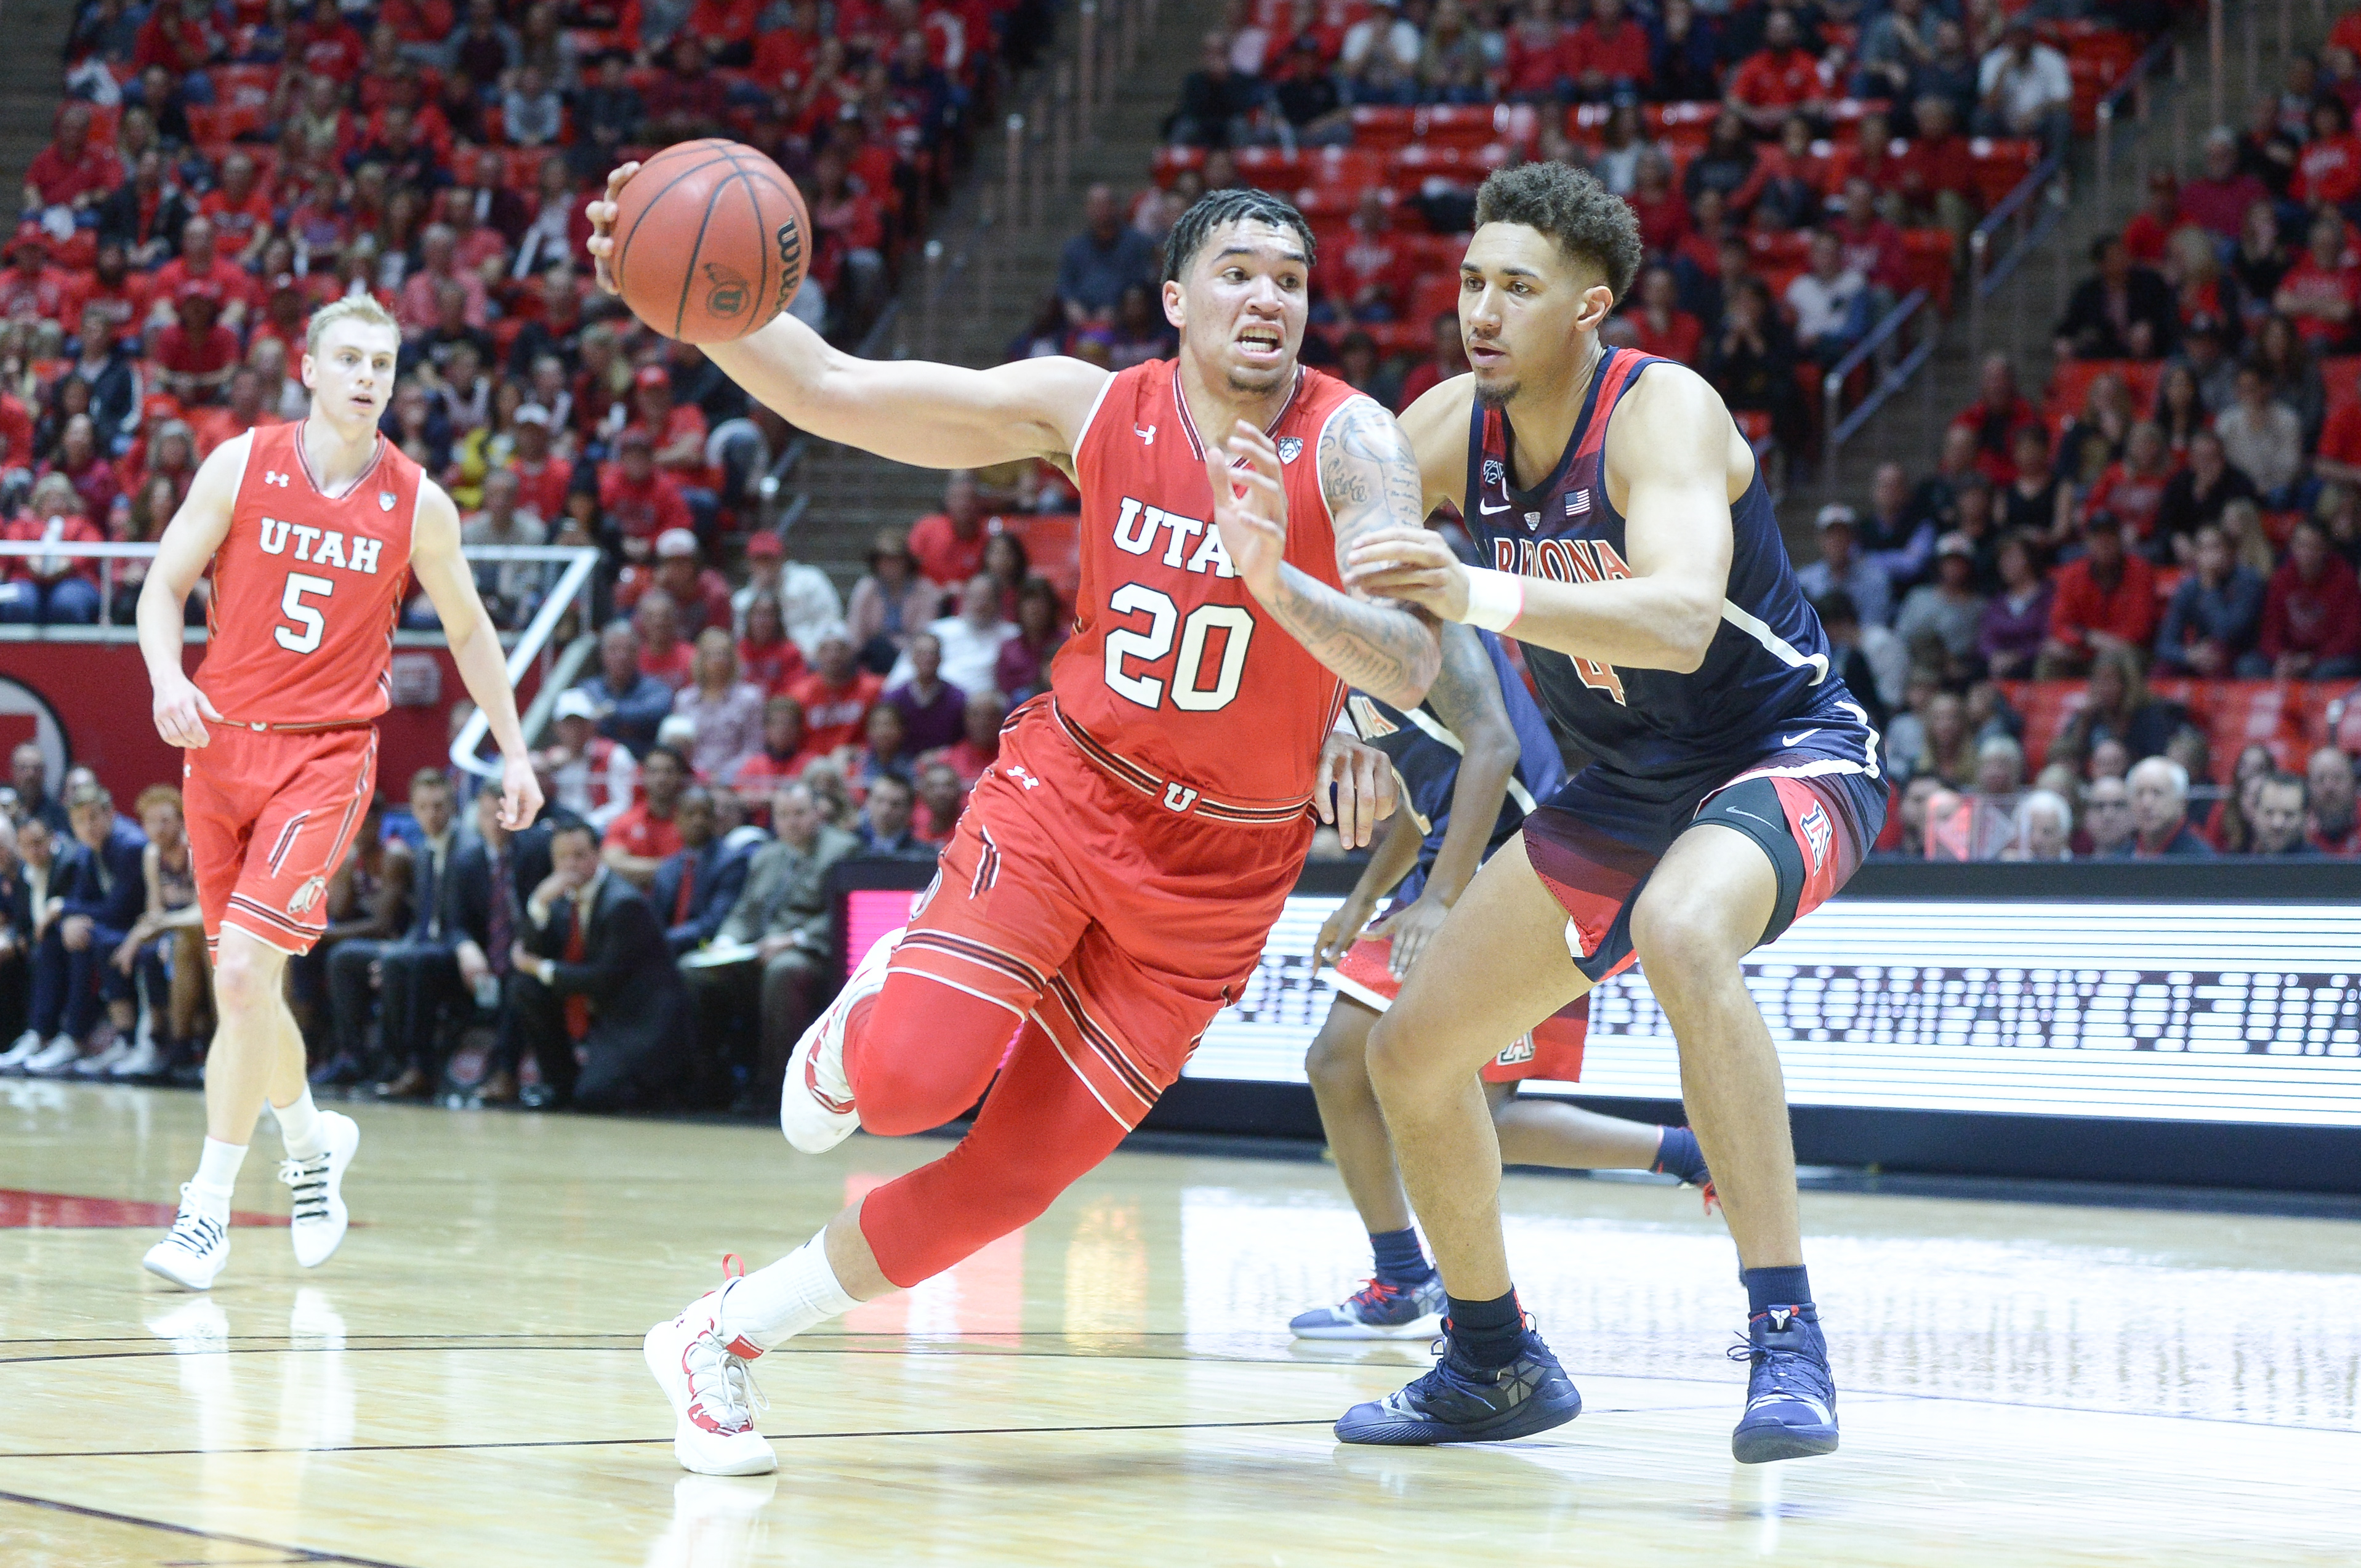 arizona-utah-basketball-preview-notes-time-tv-channel-live-stream-wildcats-utes-pac-12-network-watch